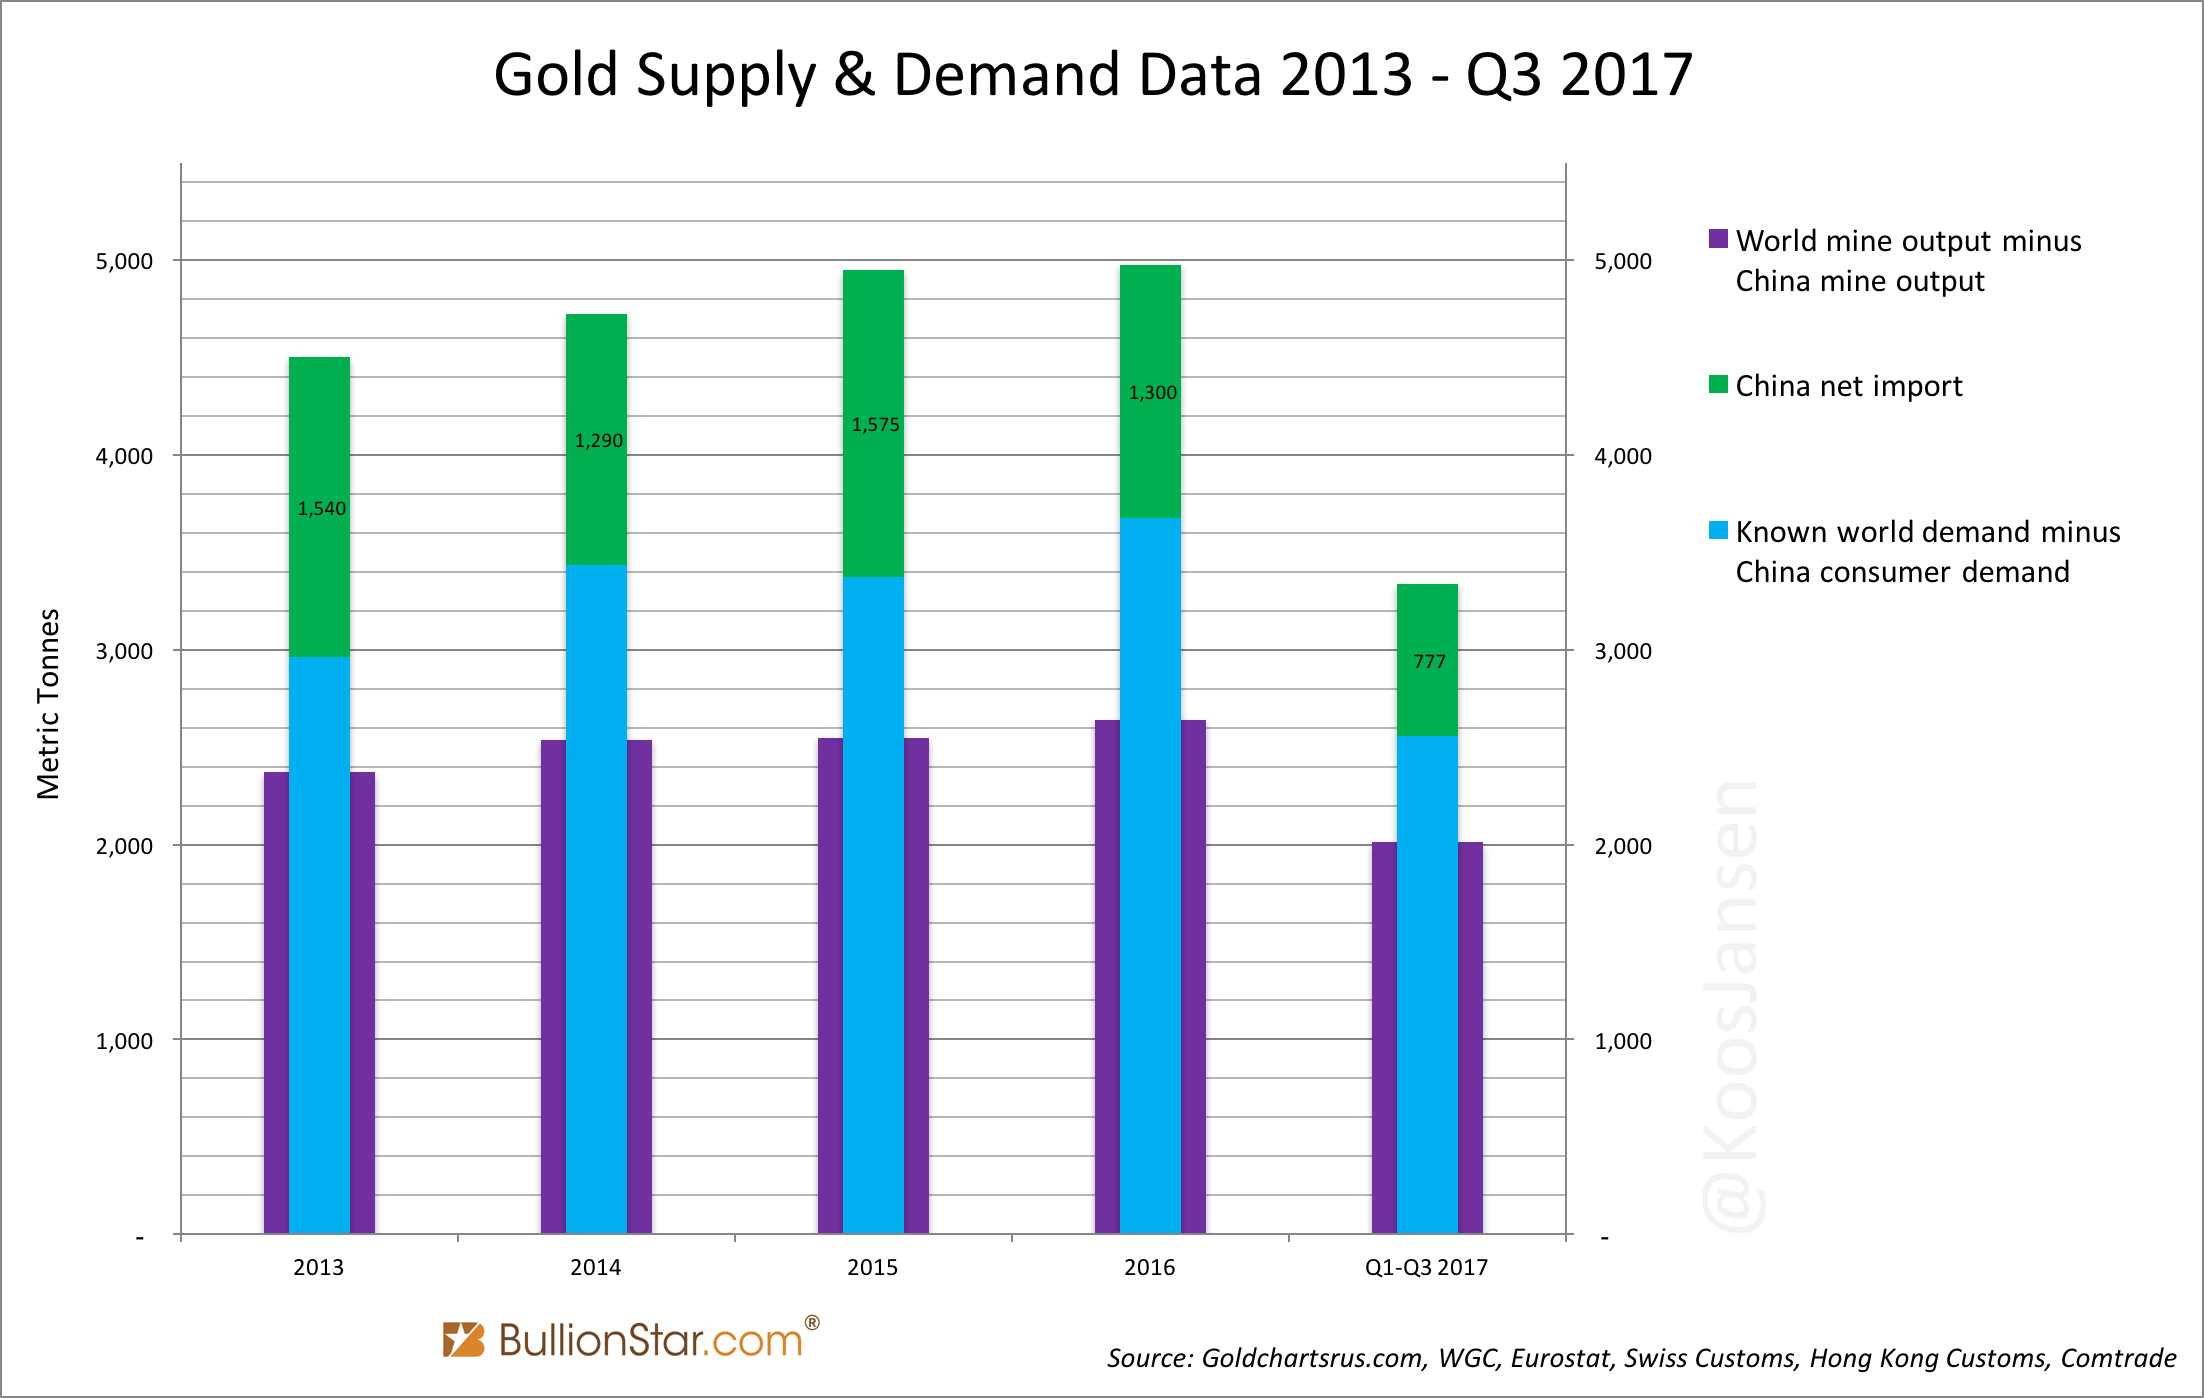 Gold Supply and Demand Data, 2013 - Q3 2017